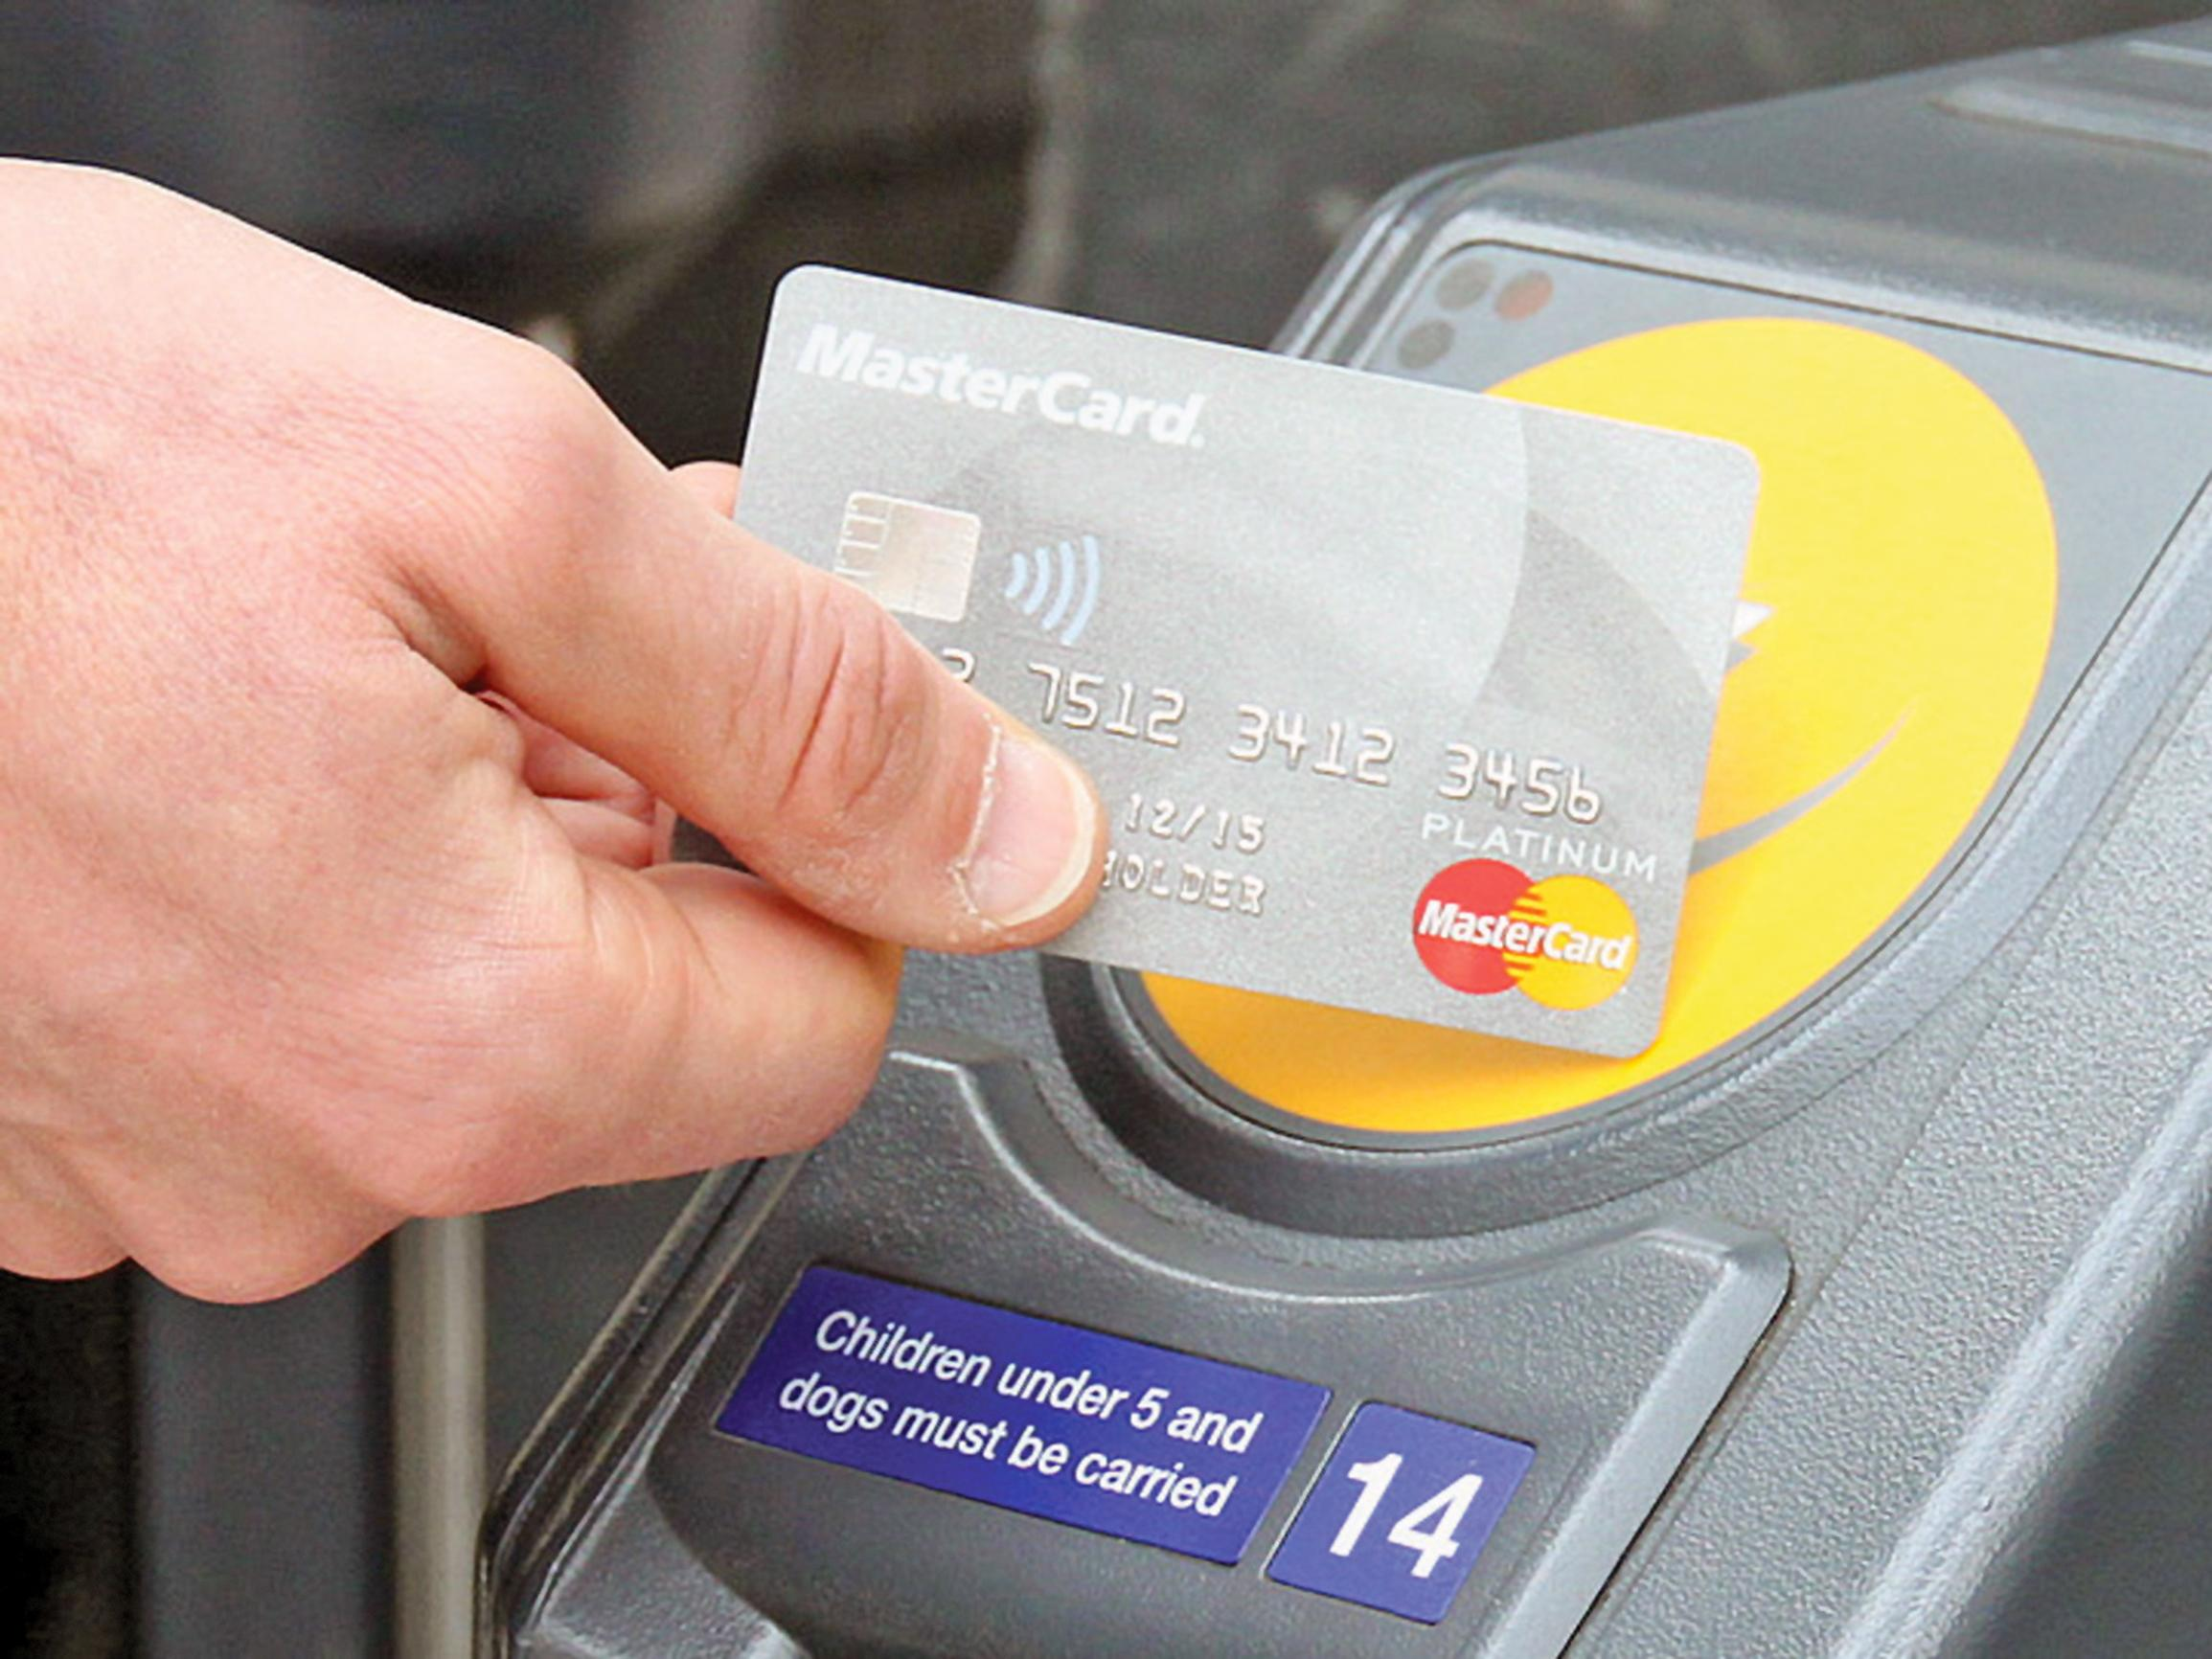 Bus operators already offer contactless ticketing, prompting some to question the value of TfN's proposal